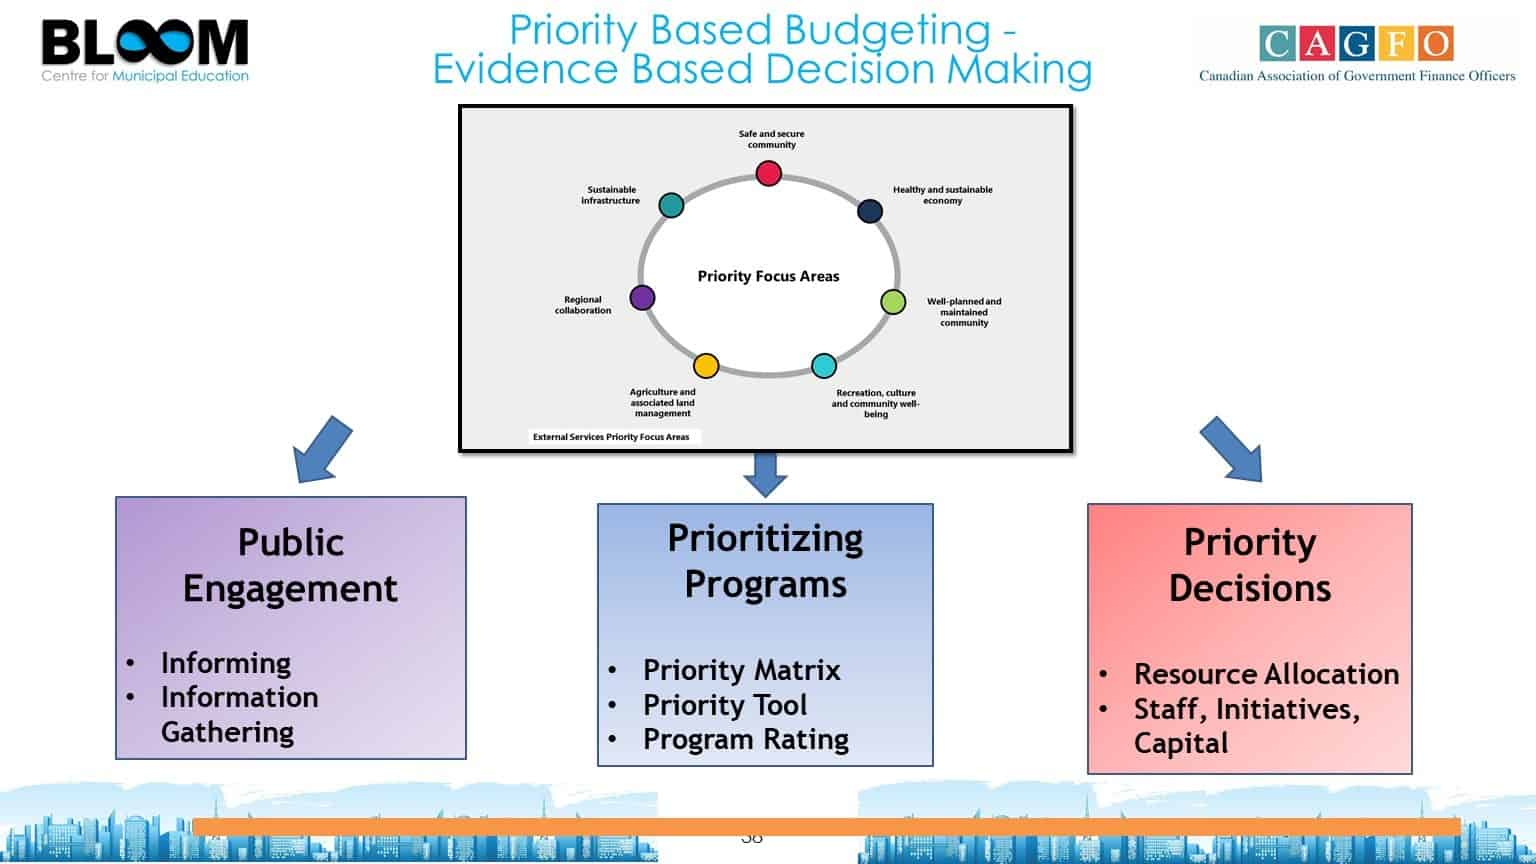 Priority Based Budgeting - Evidence Based Decision Making